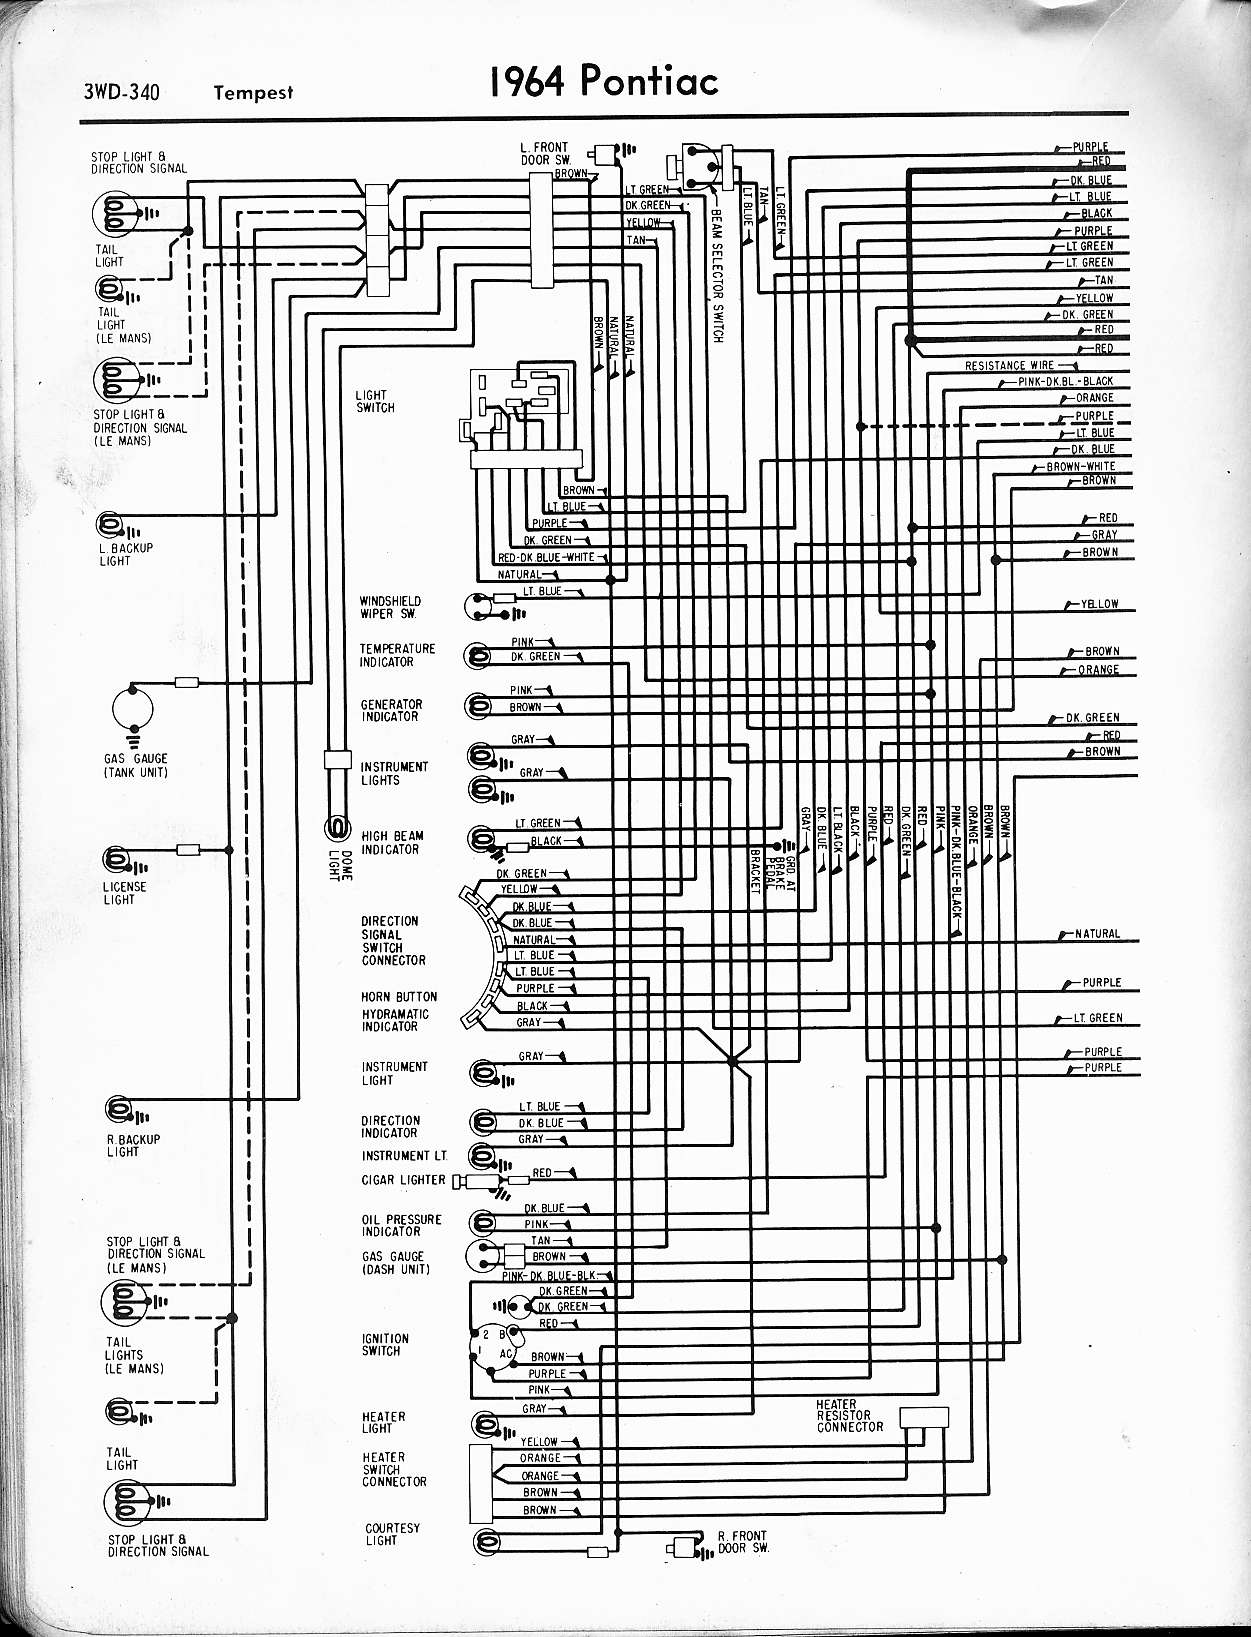 wallace racing wiring diagrams rh wallaceracing com Pontiac Grand Prix Engine Diagram Wiring Diagram for 1989 Pontiac Grand Prix